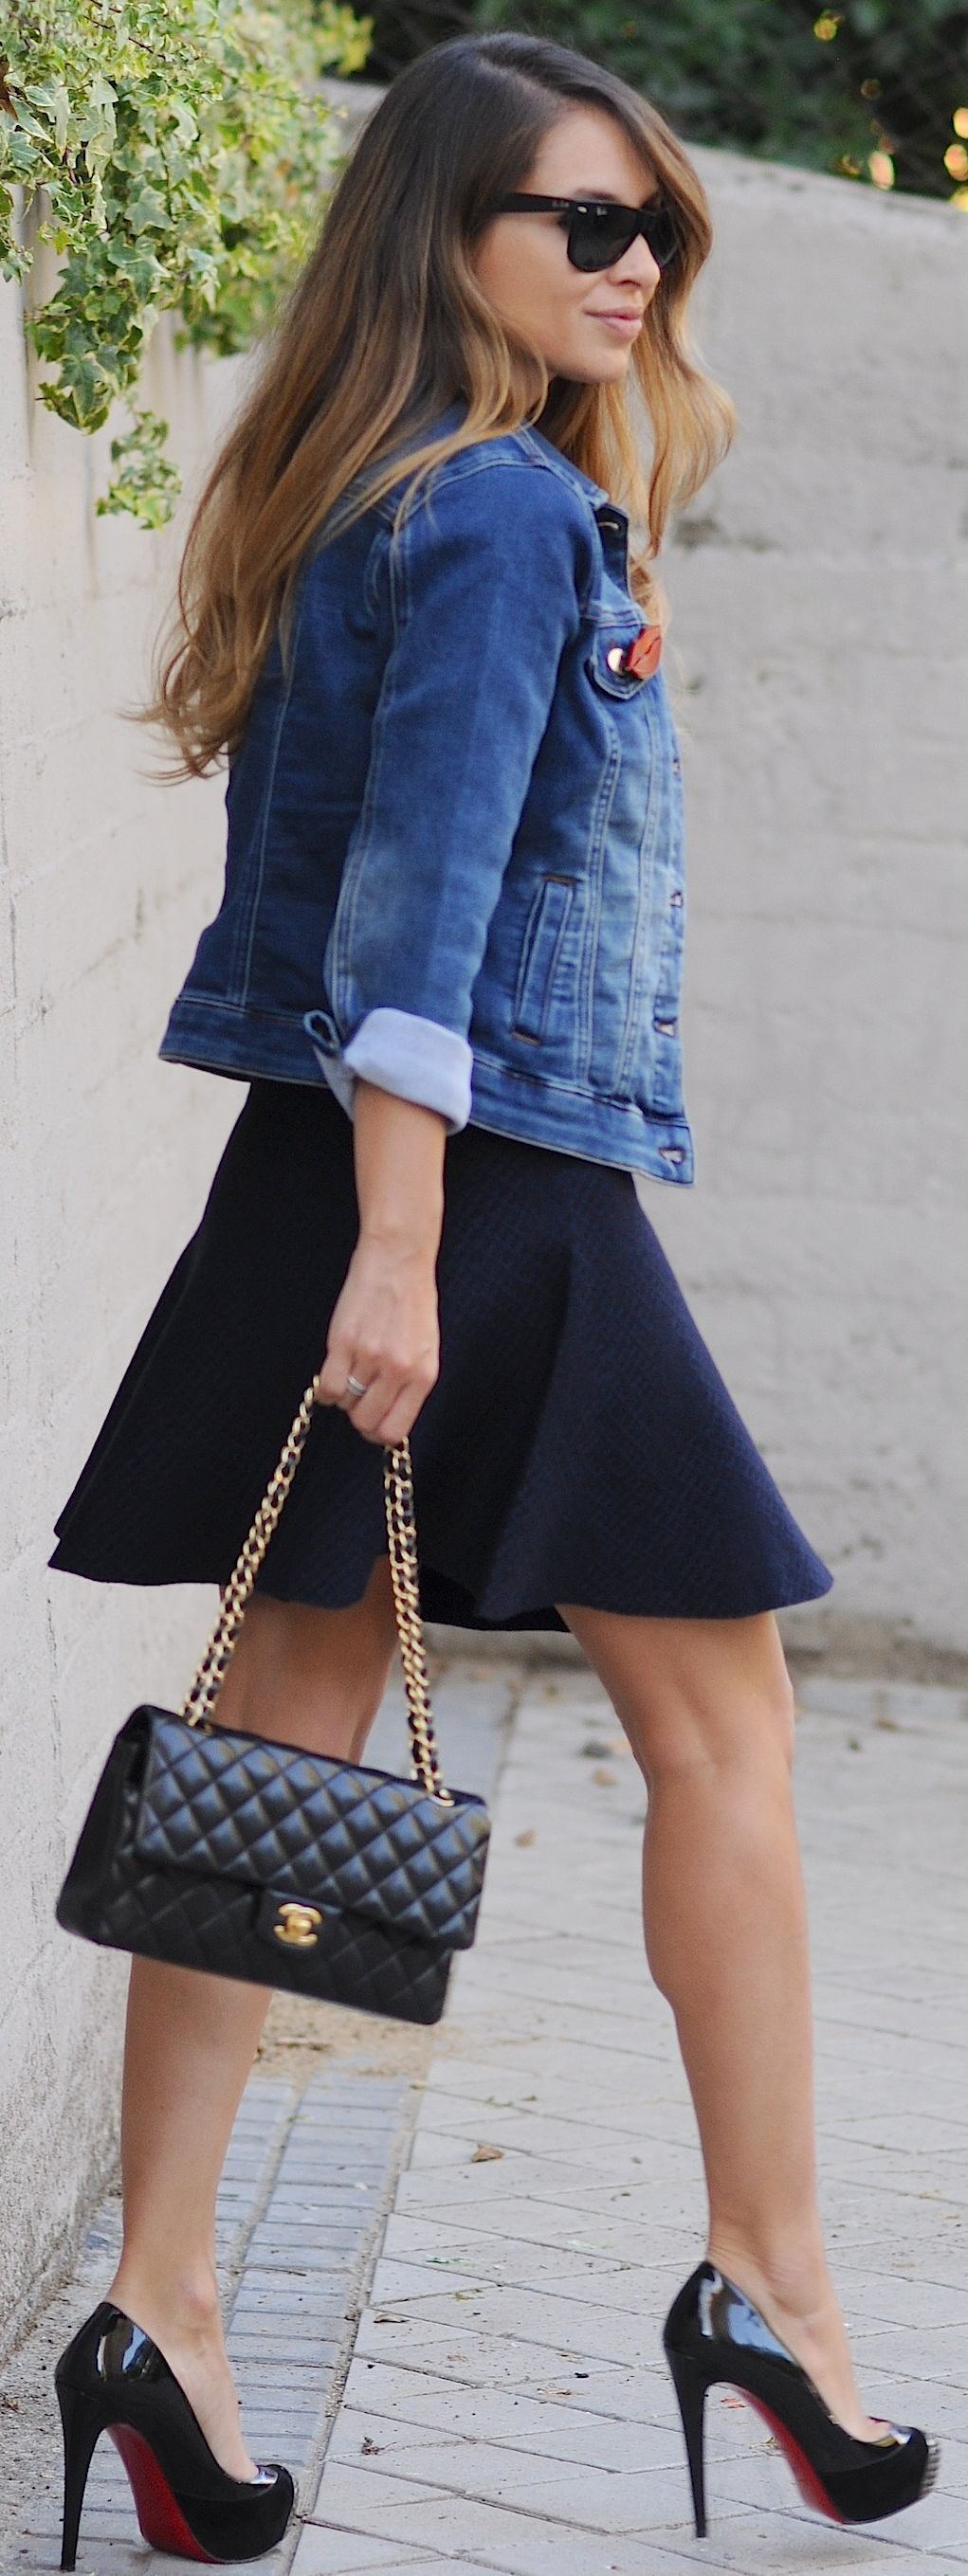 Denim Jacket On L B D Fall Streetstyle Inspo by Necklace Of Pearls | Fashion | Pinterest | Denim ...